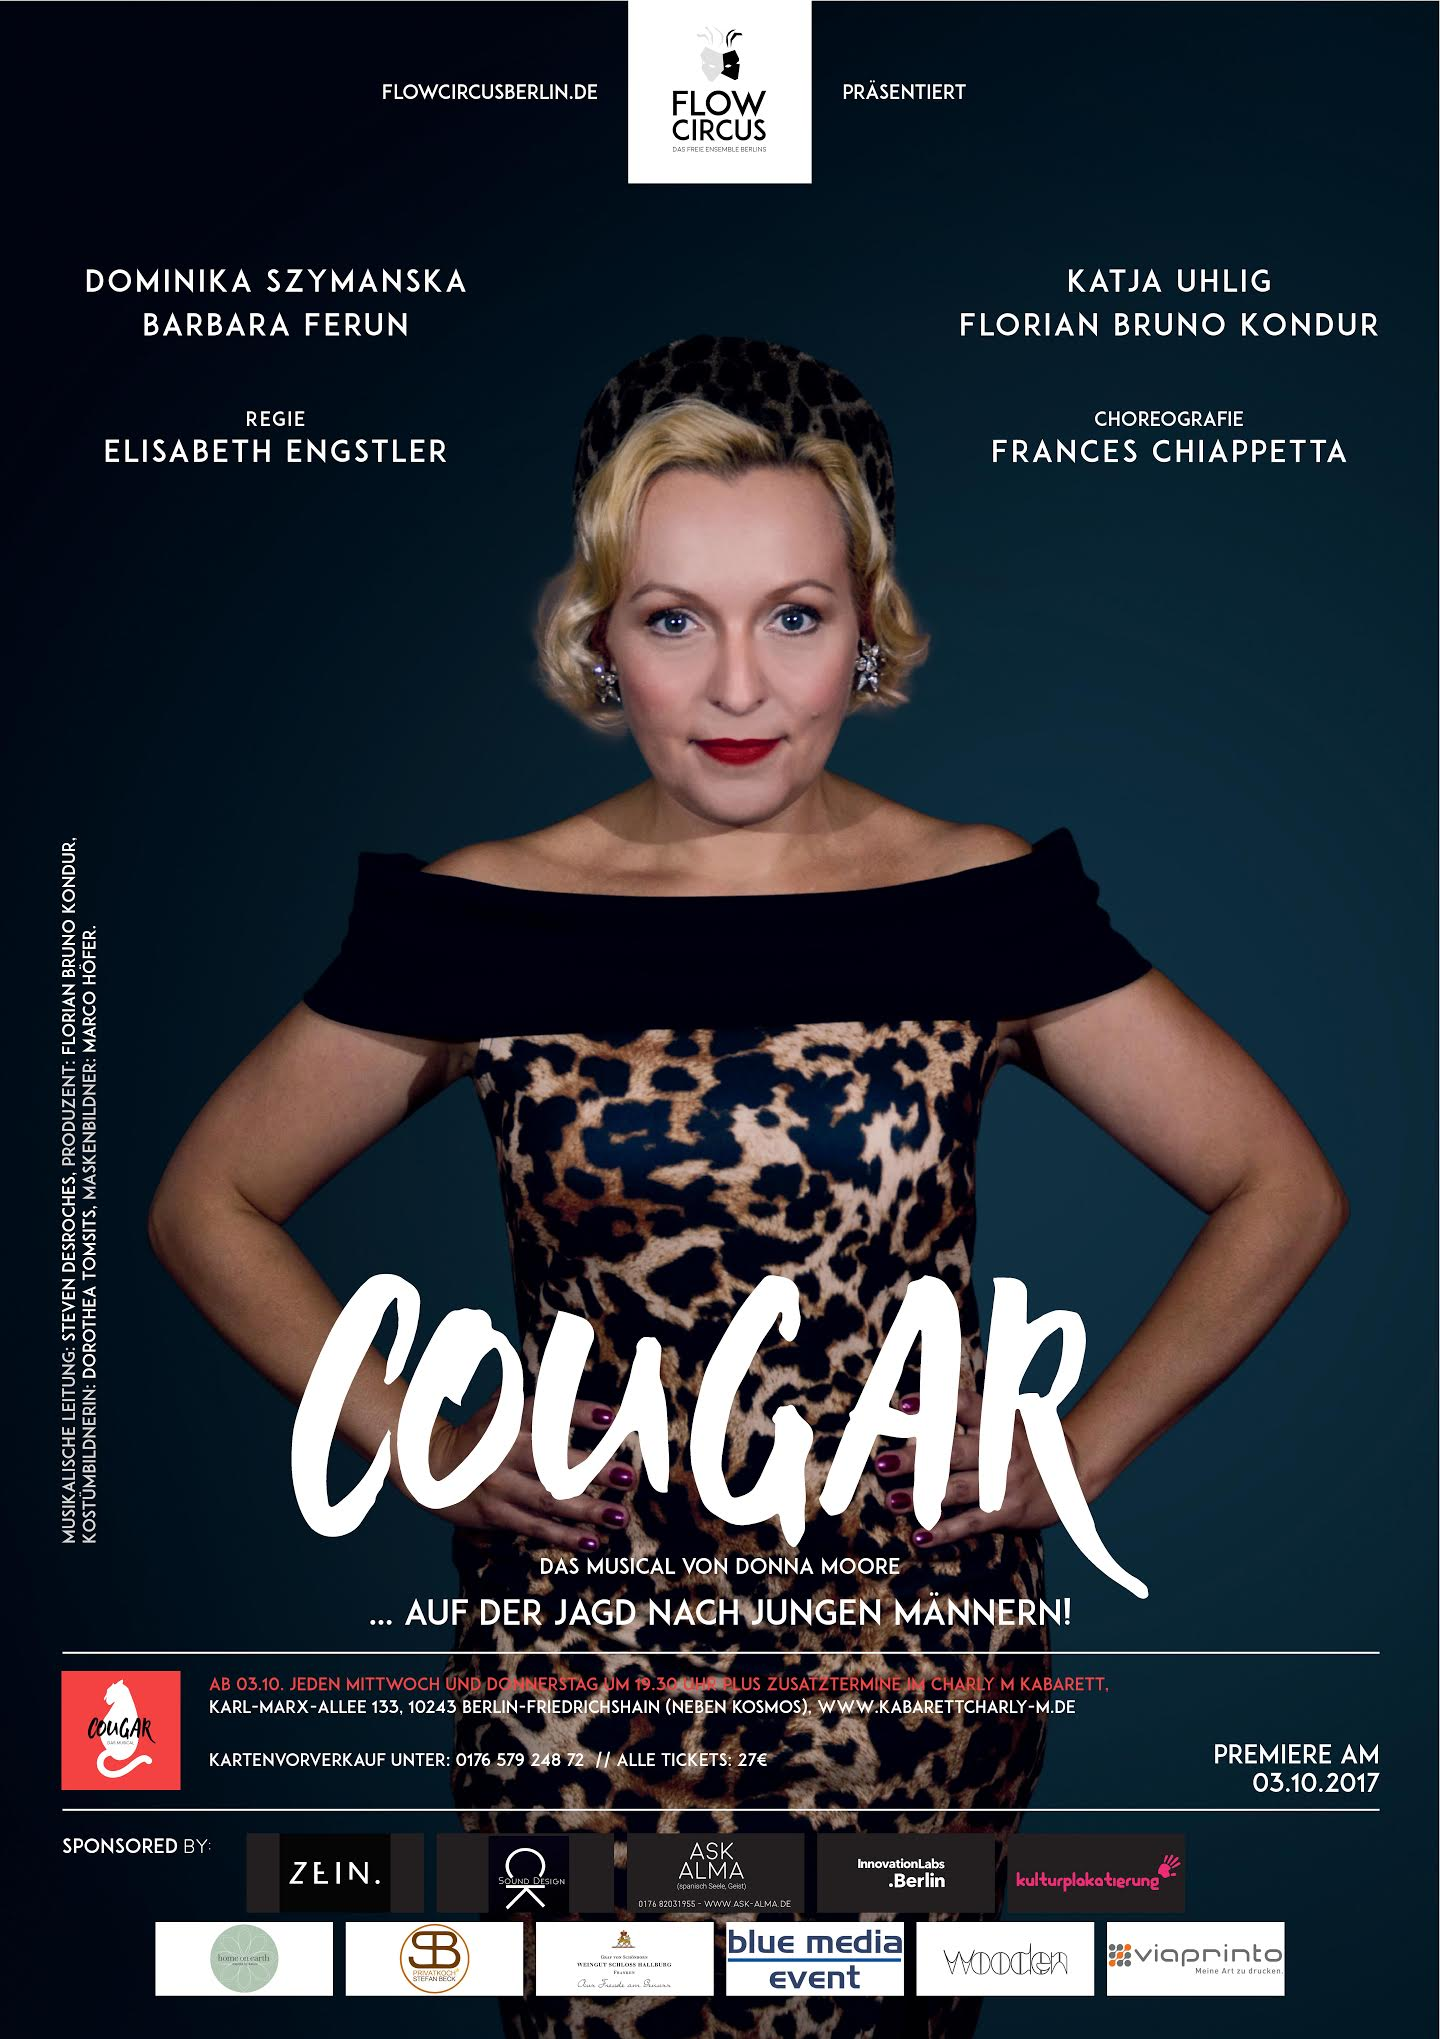 COUGAR-das Musical